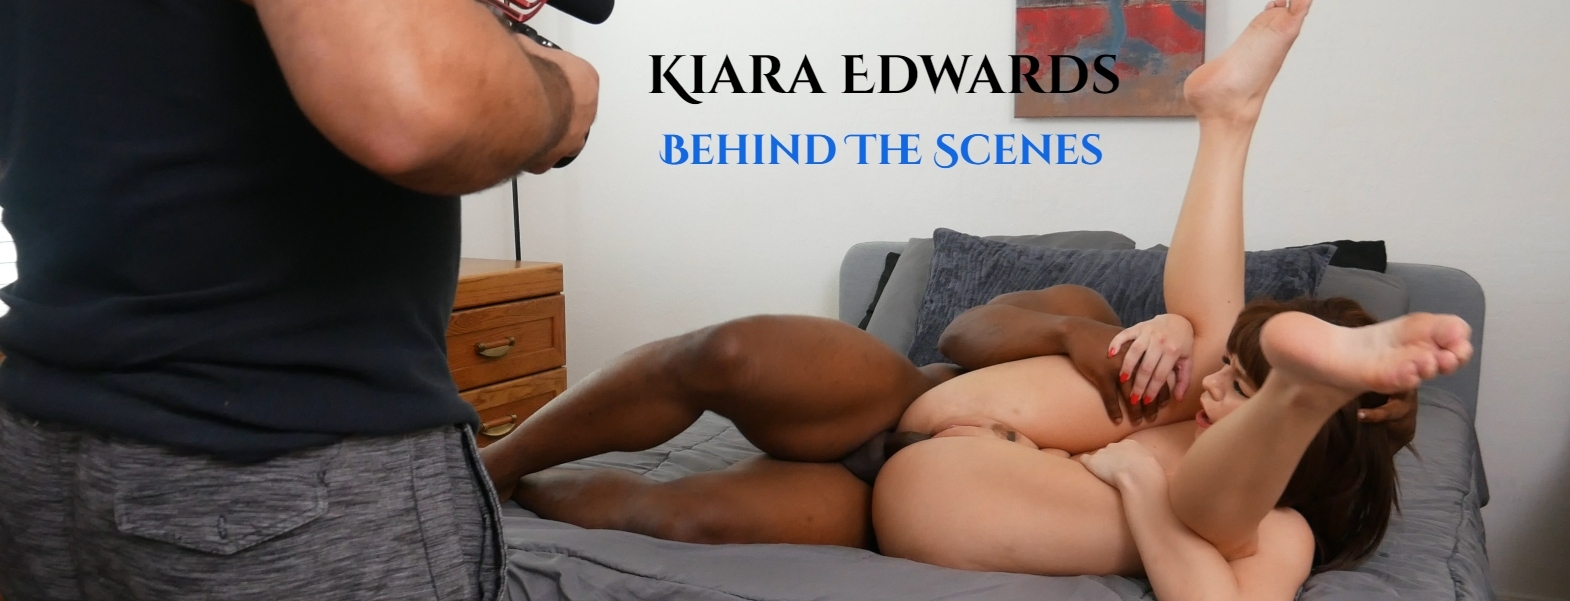 Behind_The_Scenes_With_Kiara_Edwards